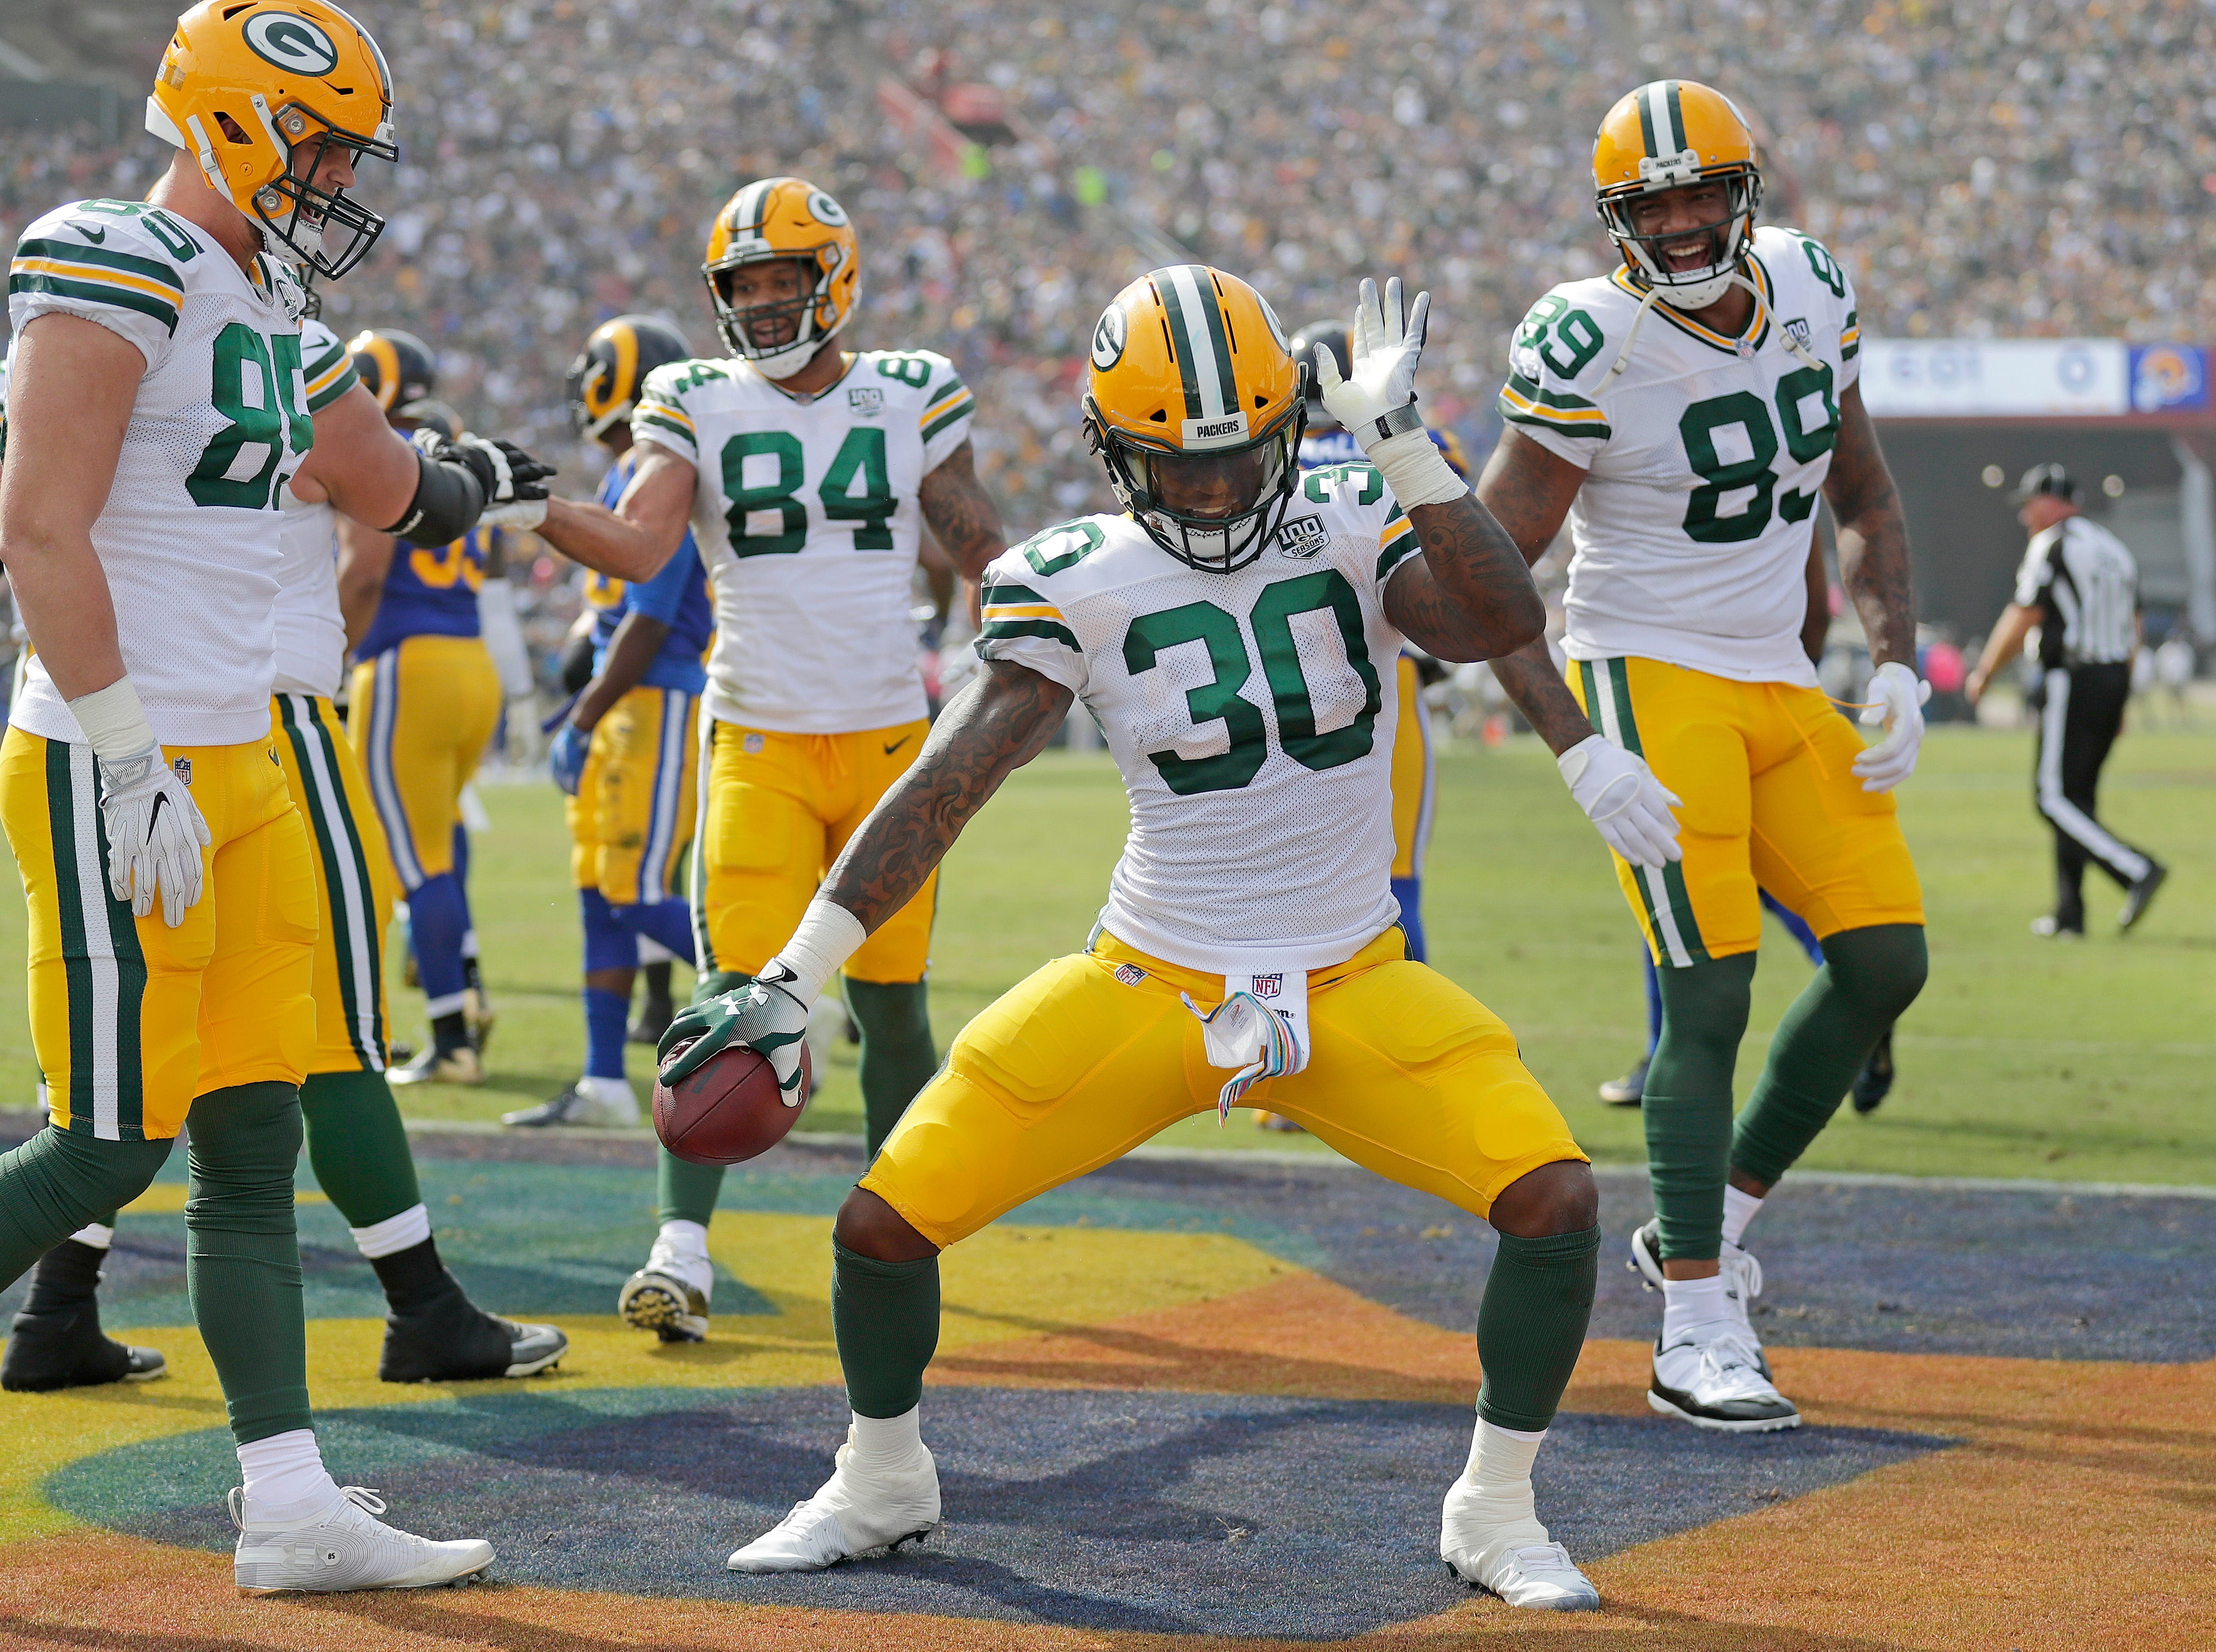 Green Bay Packers running back Jamaal Williams (30) celebrates his touchdown run against the LA Rams Sunday, October 28, 2018 at the Memorial Coliseum in Los Angeles, Cal. Jim Matthews/USA TODAY NETWORK-Wis